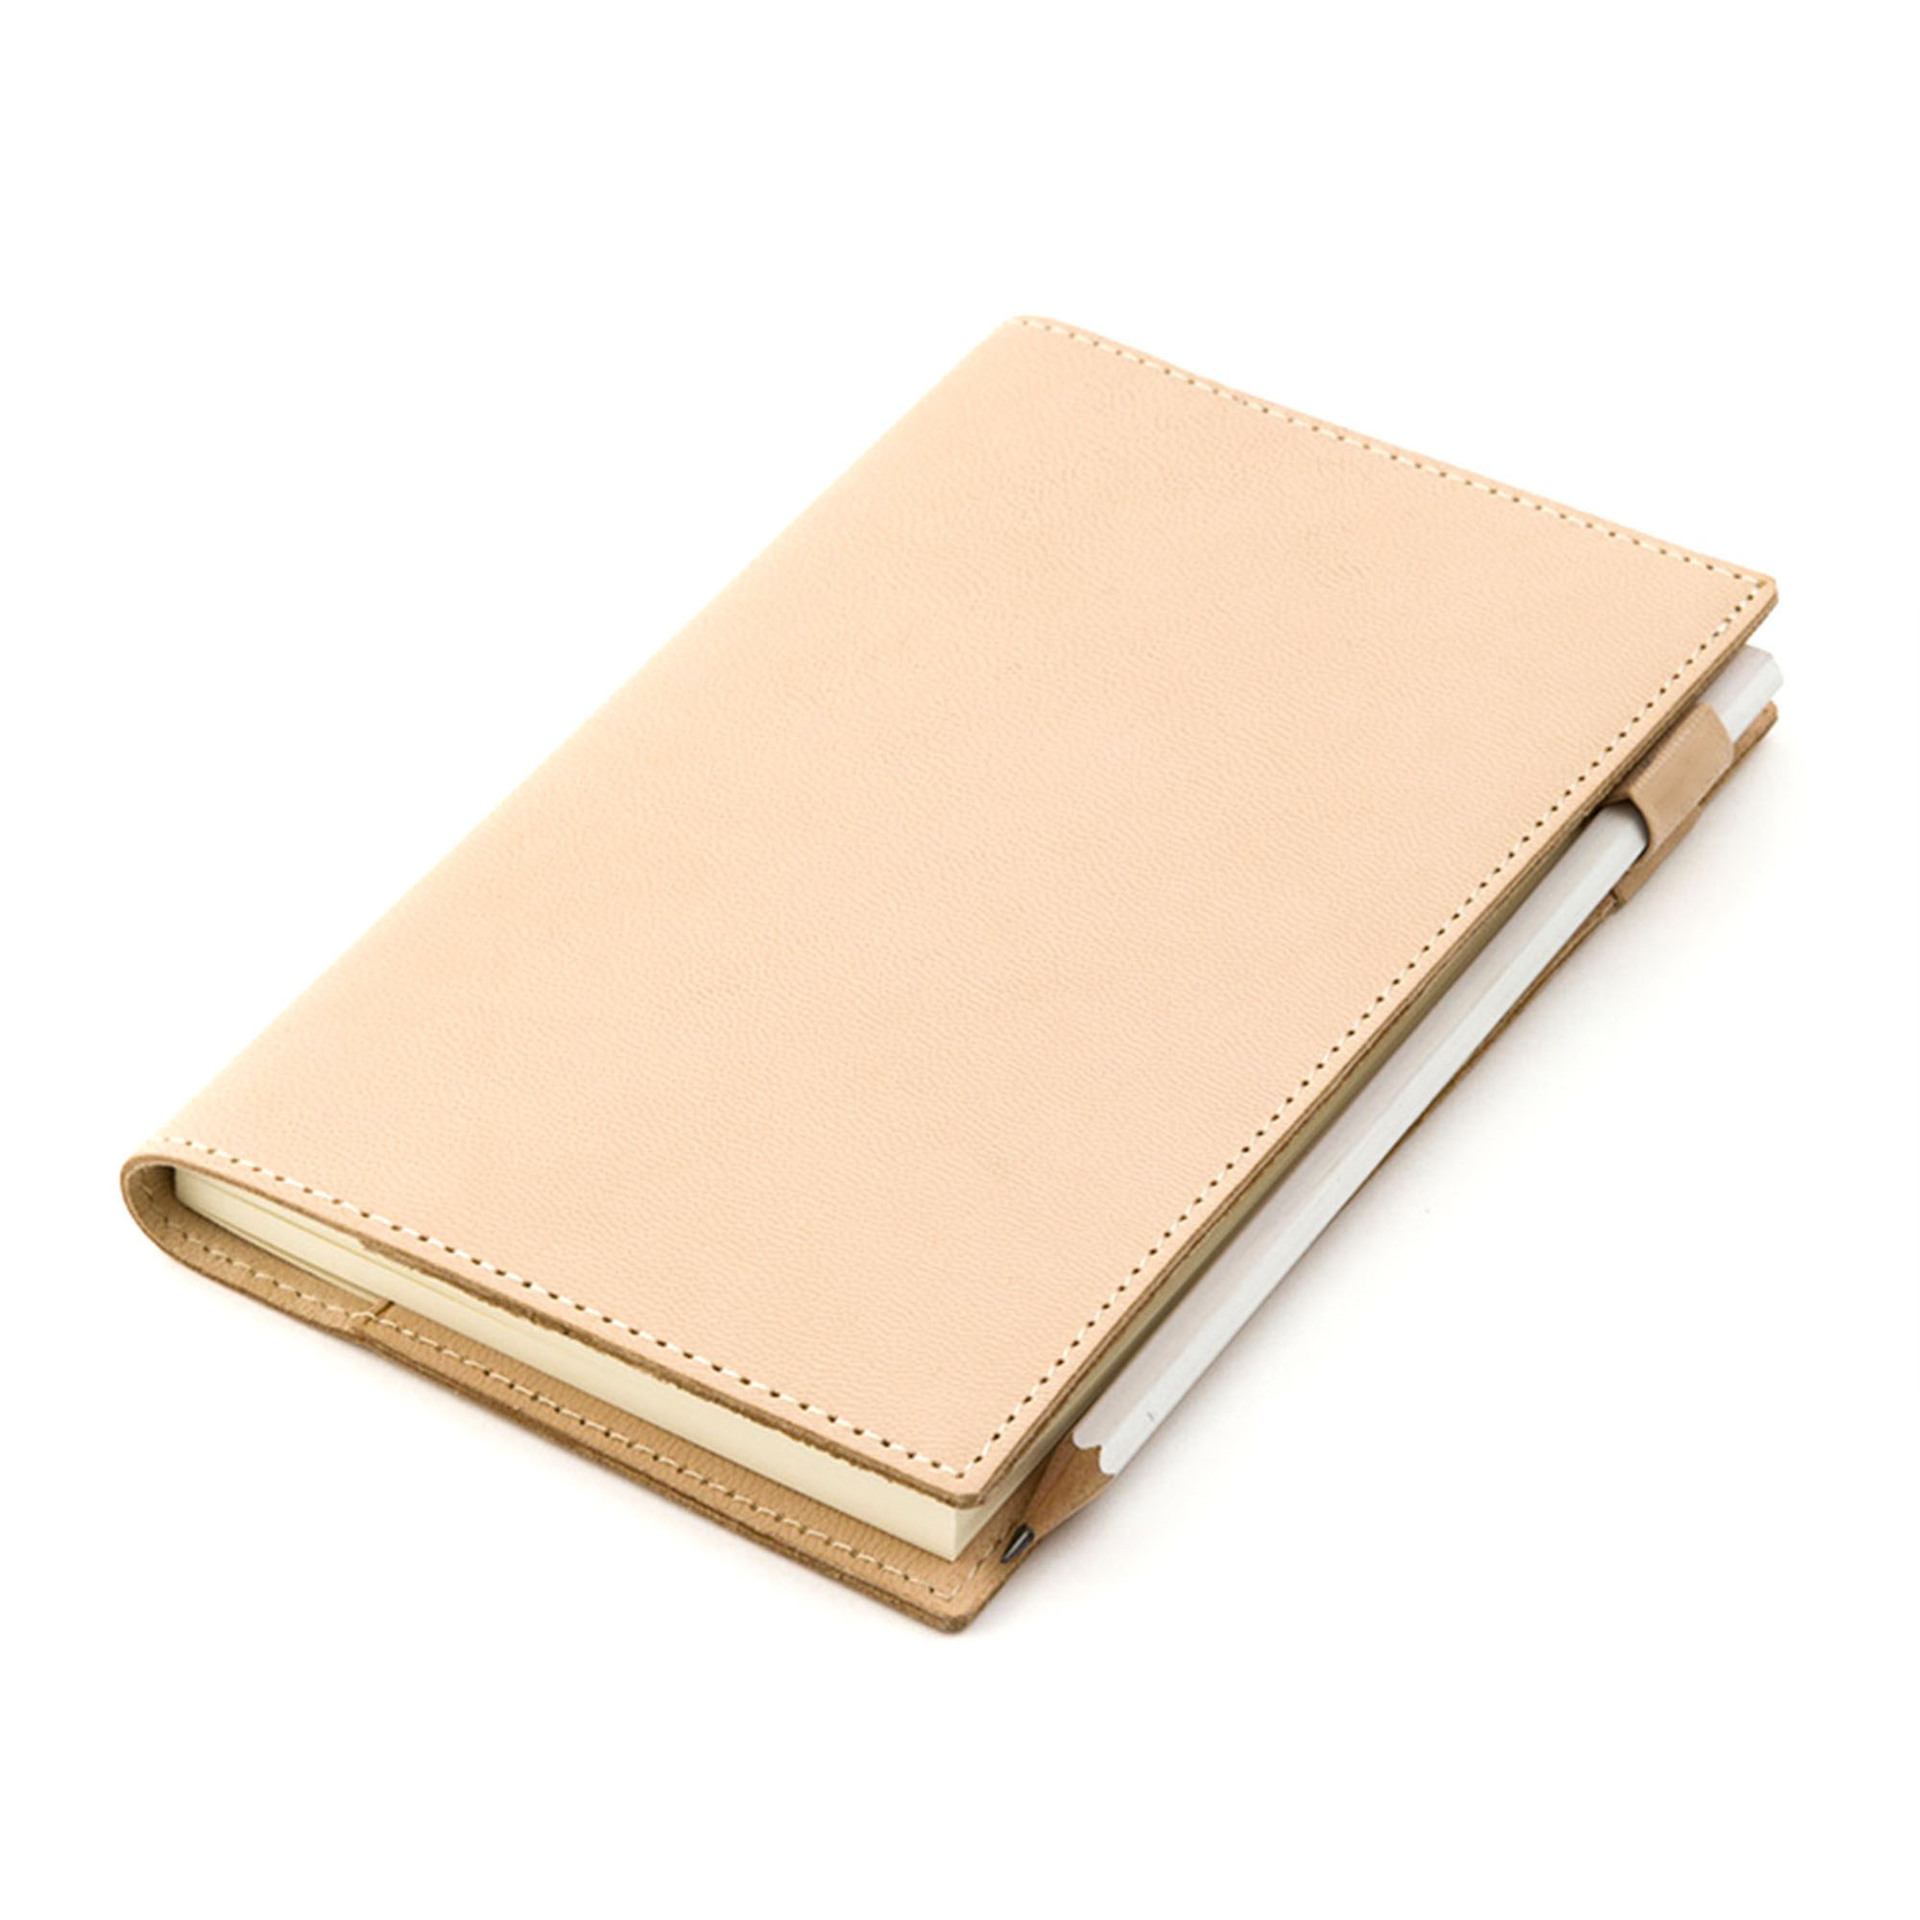 Hand Made Genuine Leather Cover Suit For Standard Fitted A5 A6 Paper Book Beige Pink